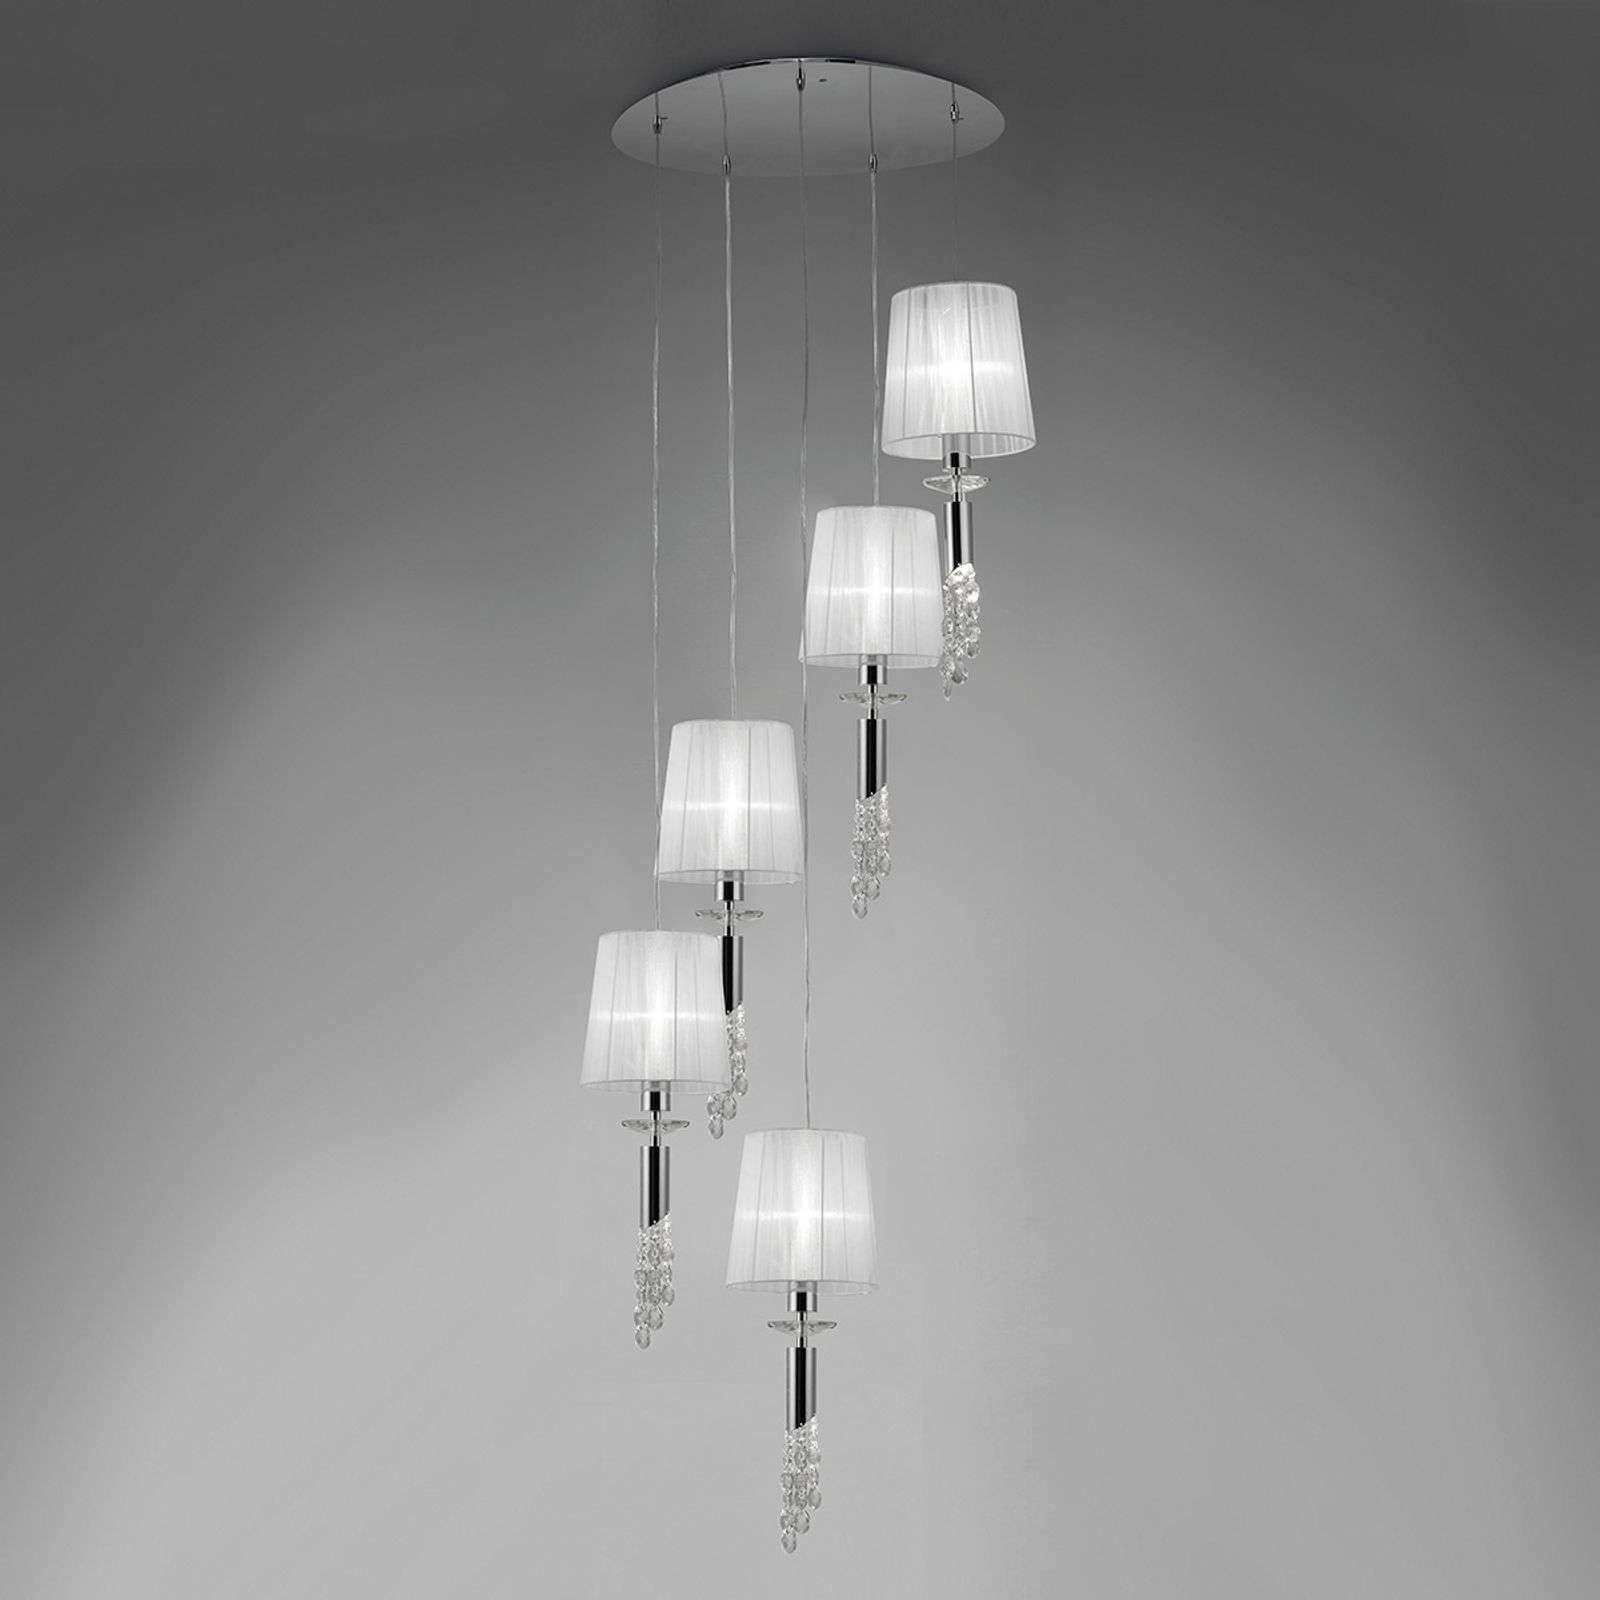 Très belle suspension Lilja, à 5 lampes